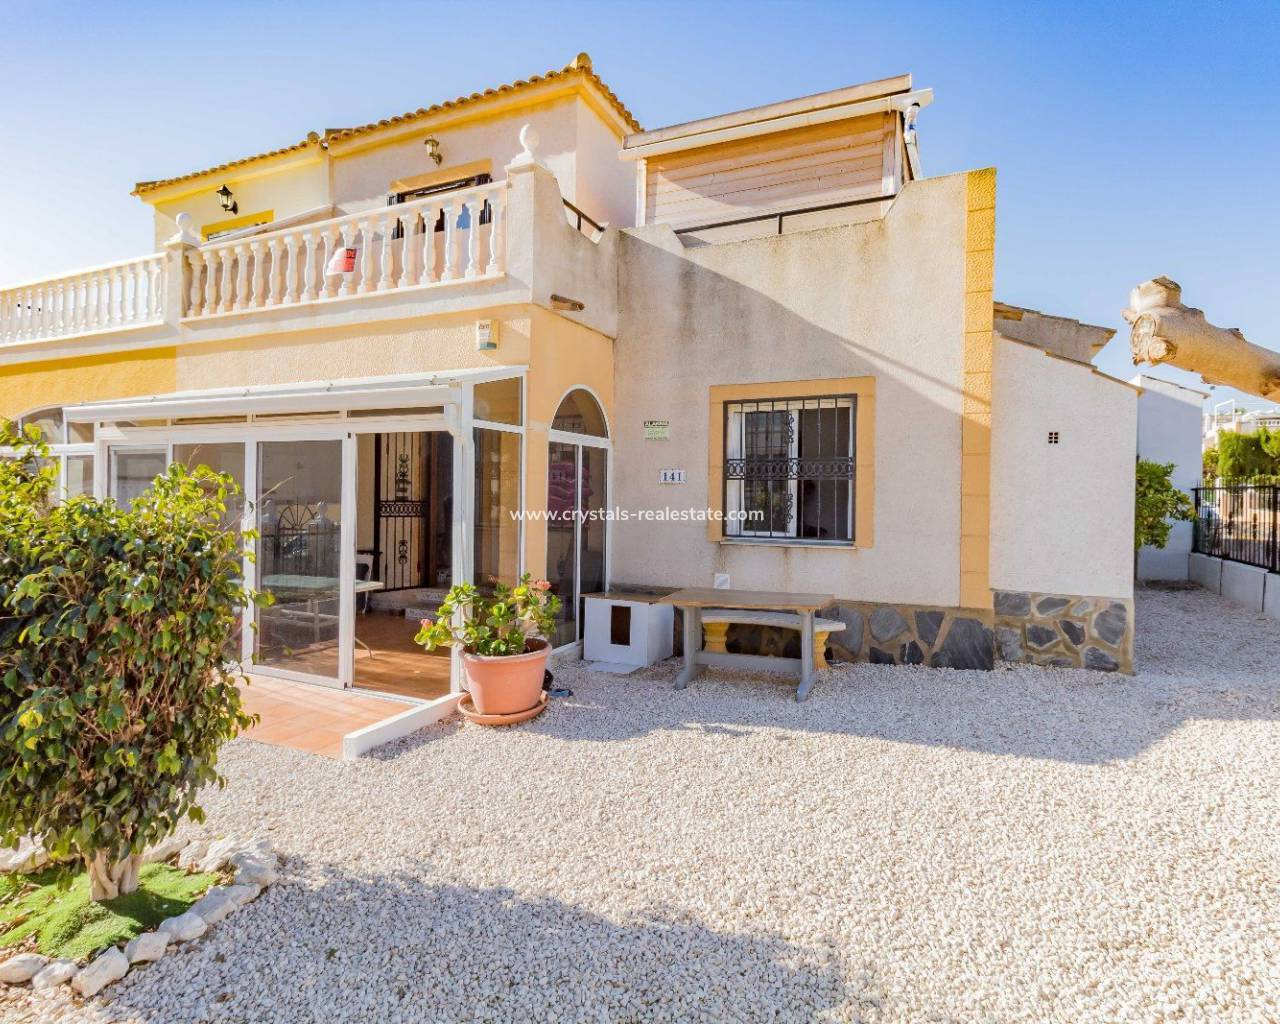 Chalets Pareados - Resale - Orihuela-Costa - Orihuela-Costa